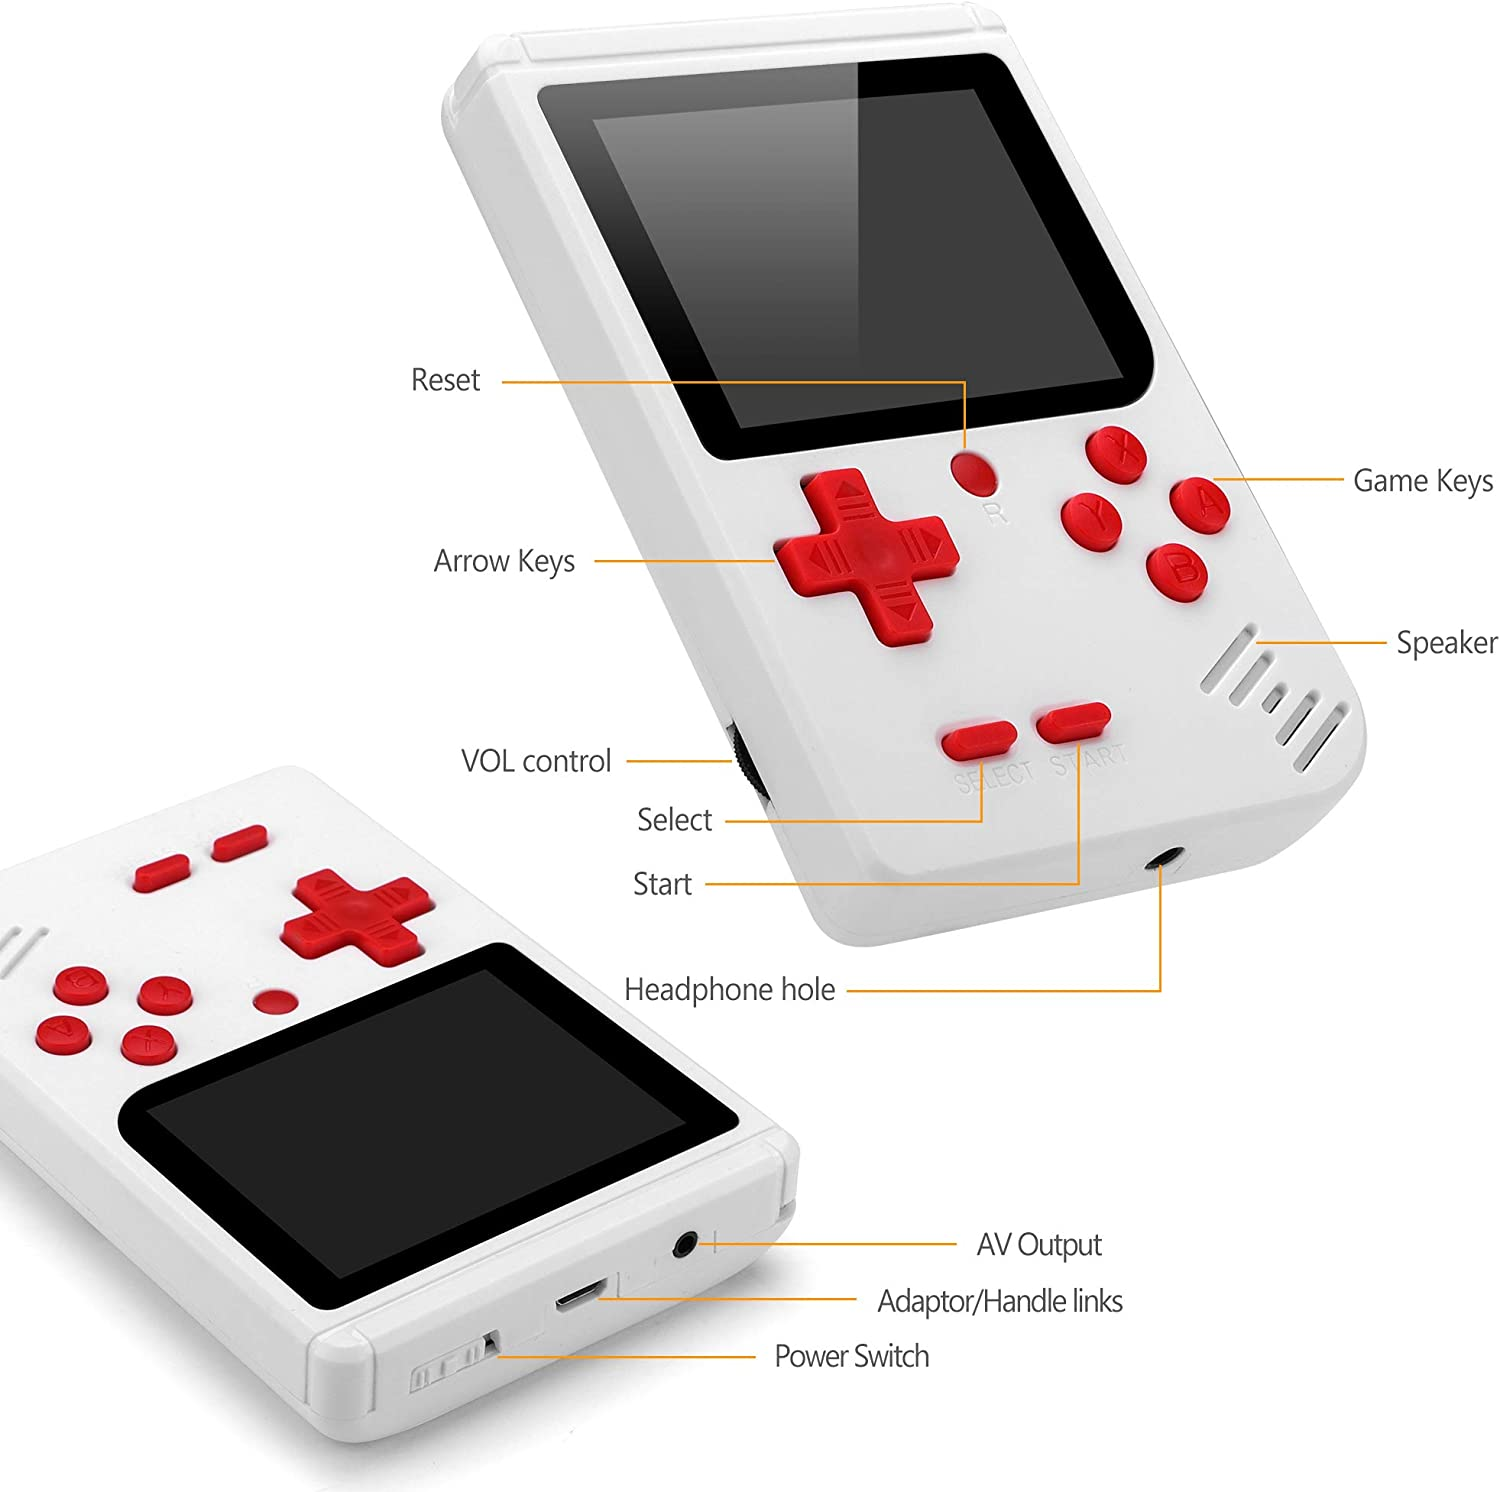 Handheld Game Console,Retro Portable Game Console with 400 Classic FC gamesgame 3-inch HD screenbuilt-in 800mA Rechargeable Battery,Console That Supports TV Connection,Christmas